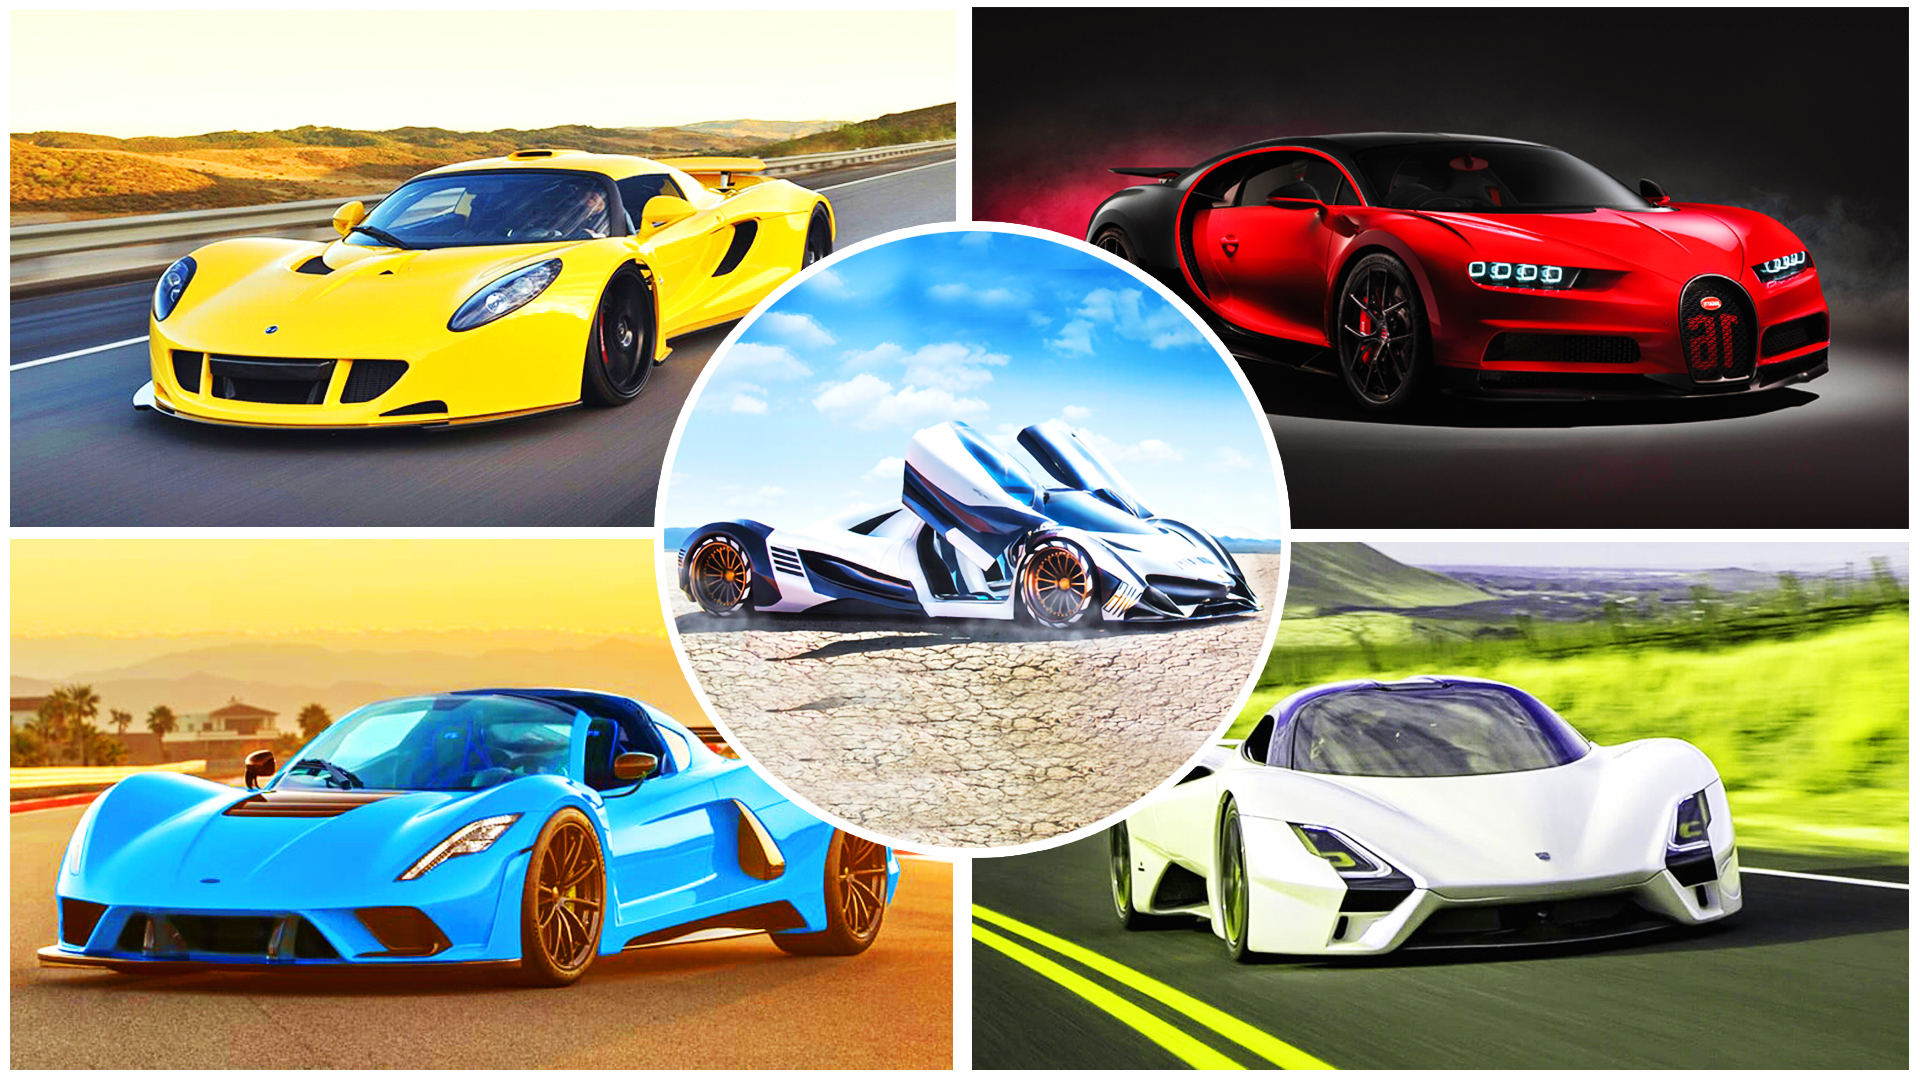 [Top 10] Fastest Cars in The World!